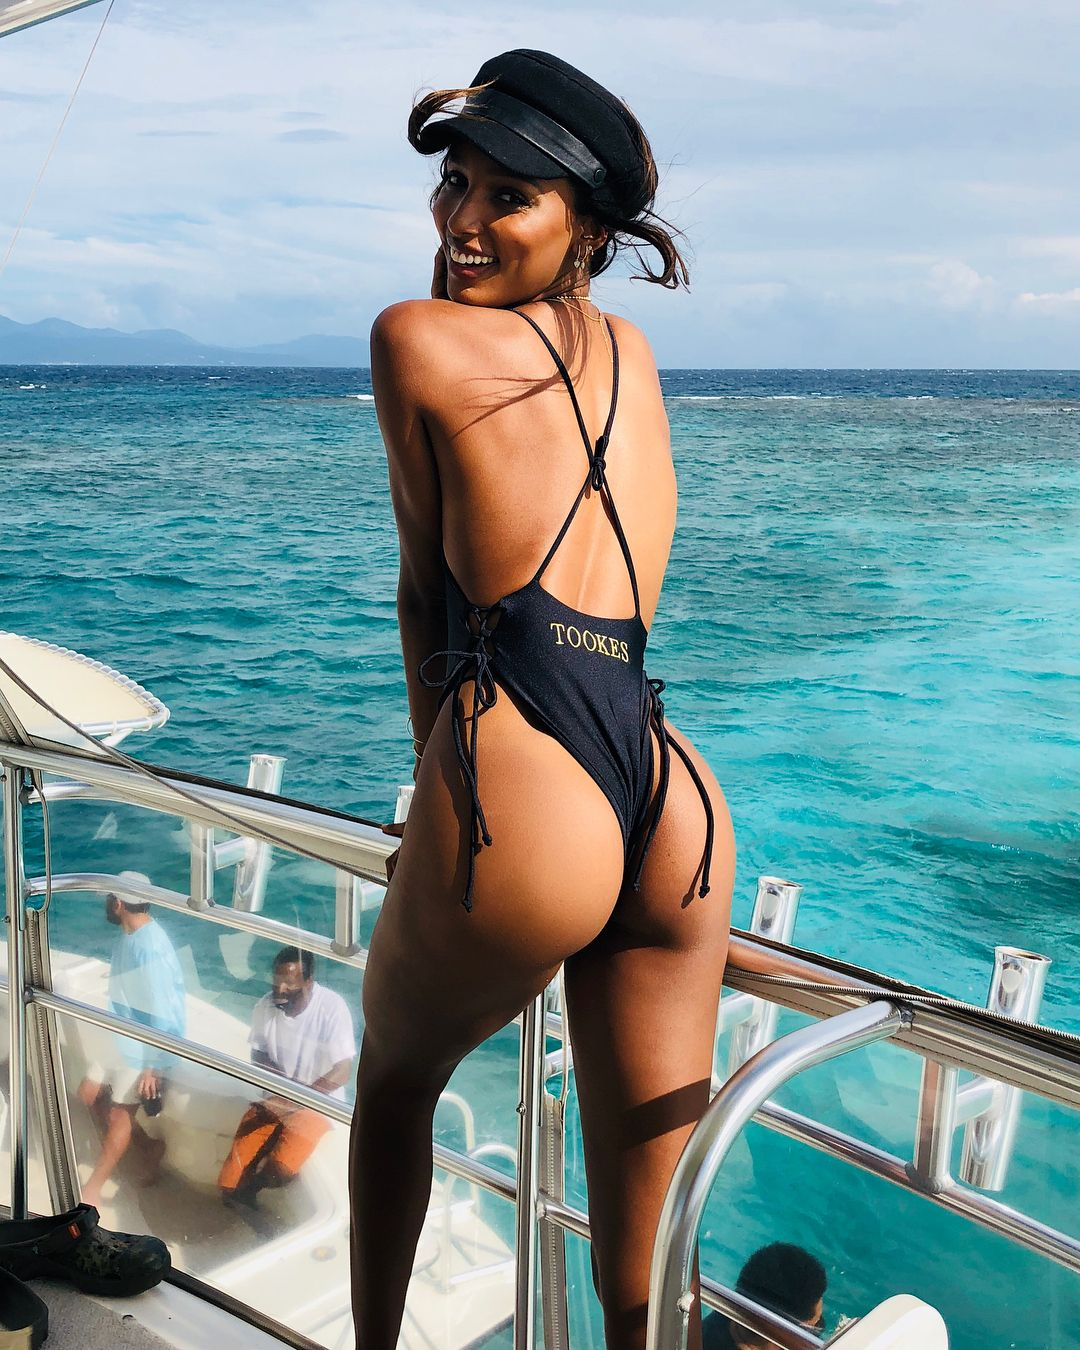 Ass Shanina Shaik nudes (42 foto and video), Pussy, Is a cute, Feet, panties 2006